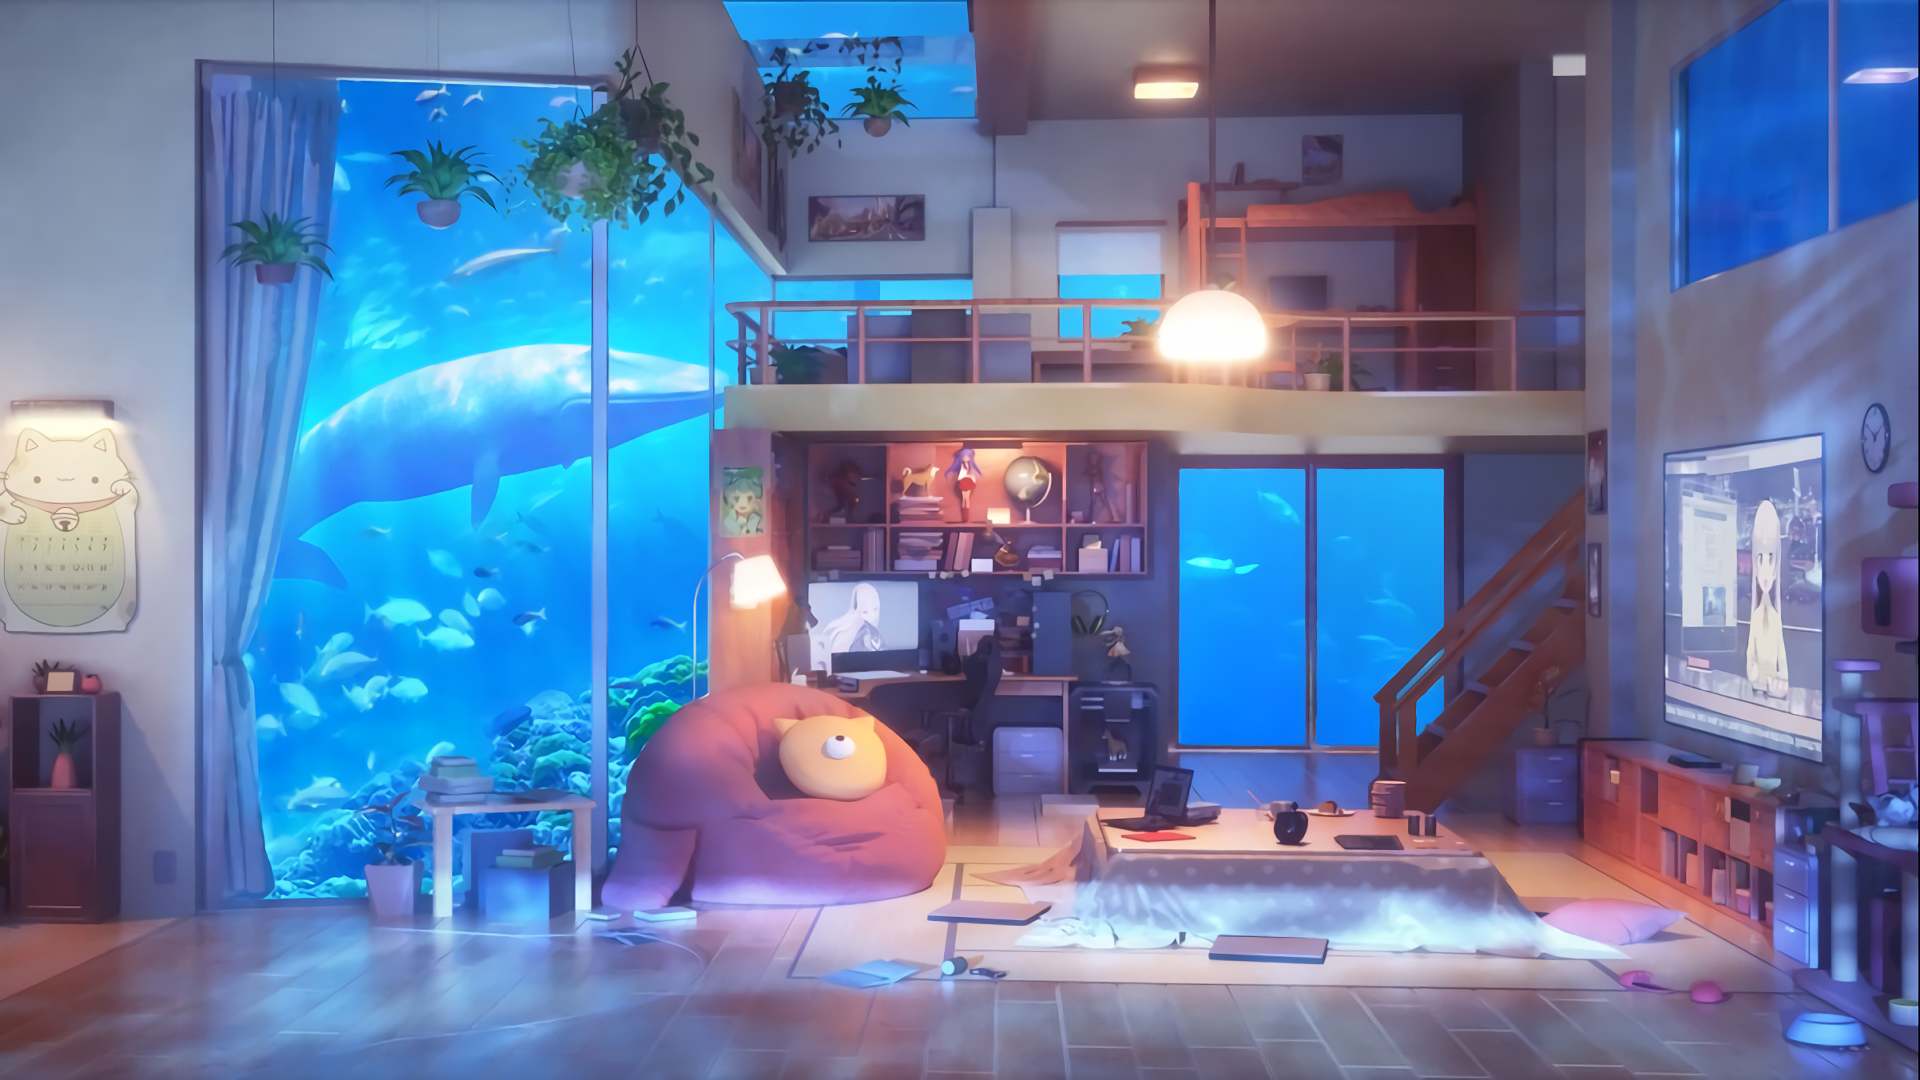 Anime Living Room Underwater HD Wallpaper Background Image 1920x1080